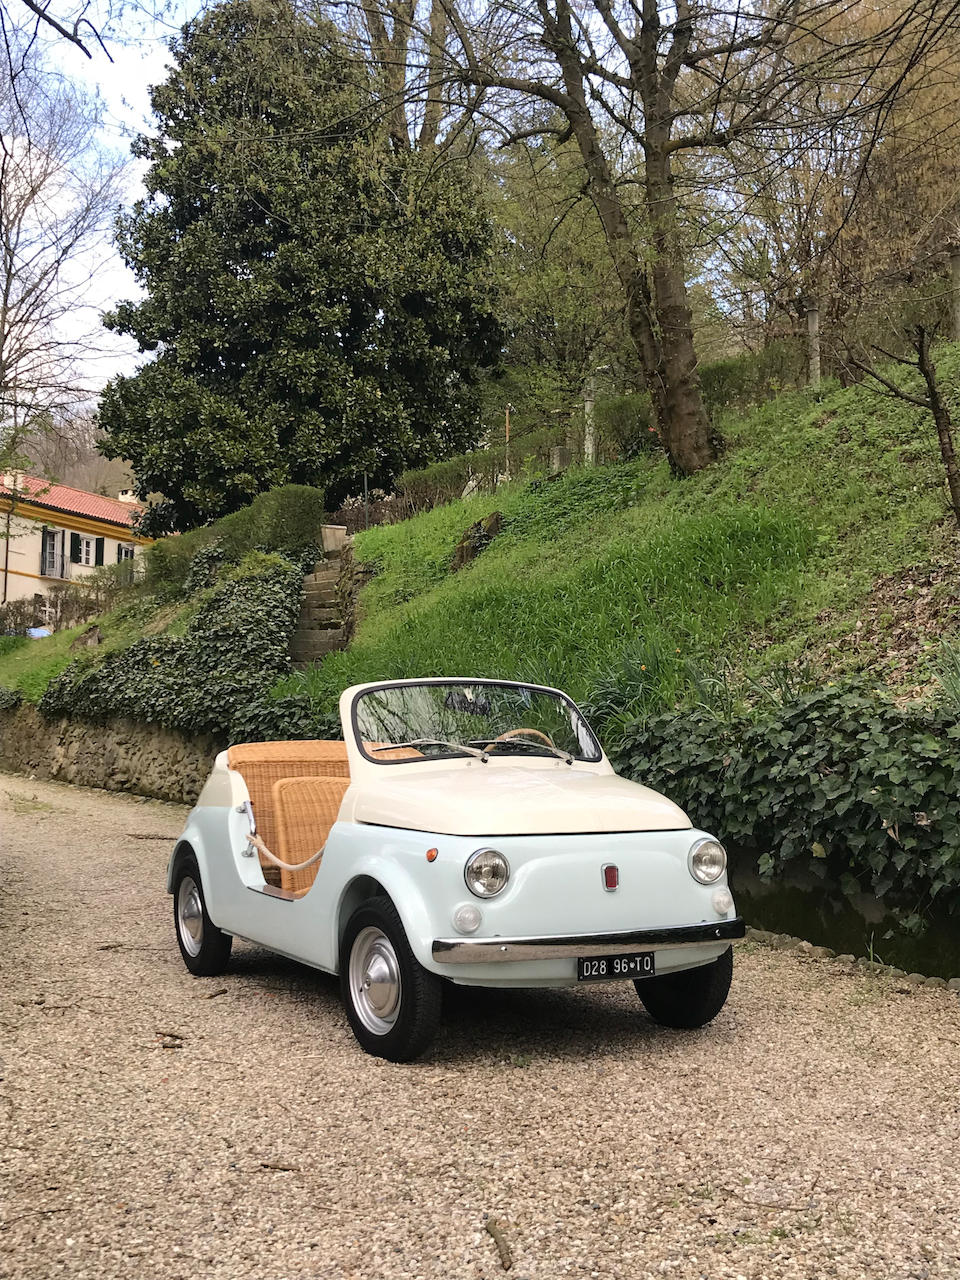 1970 FIAT 500 'Mare' Beach Car  Chassis no. 242 9372